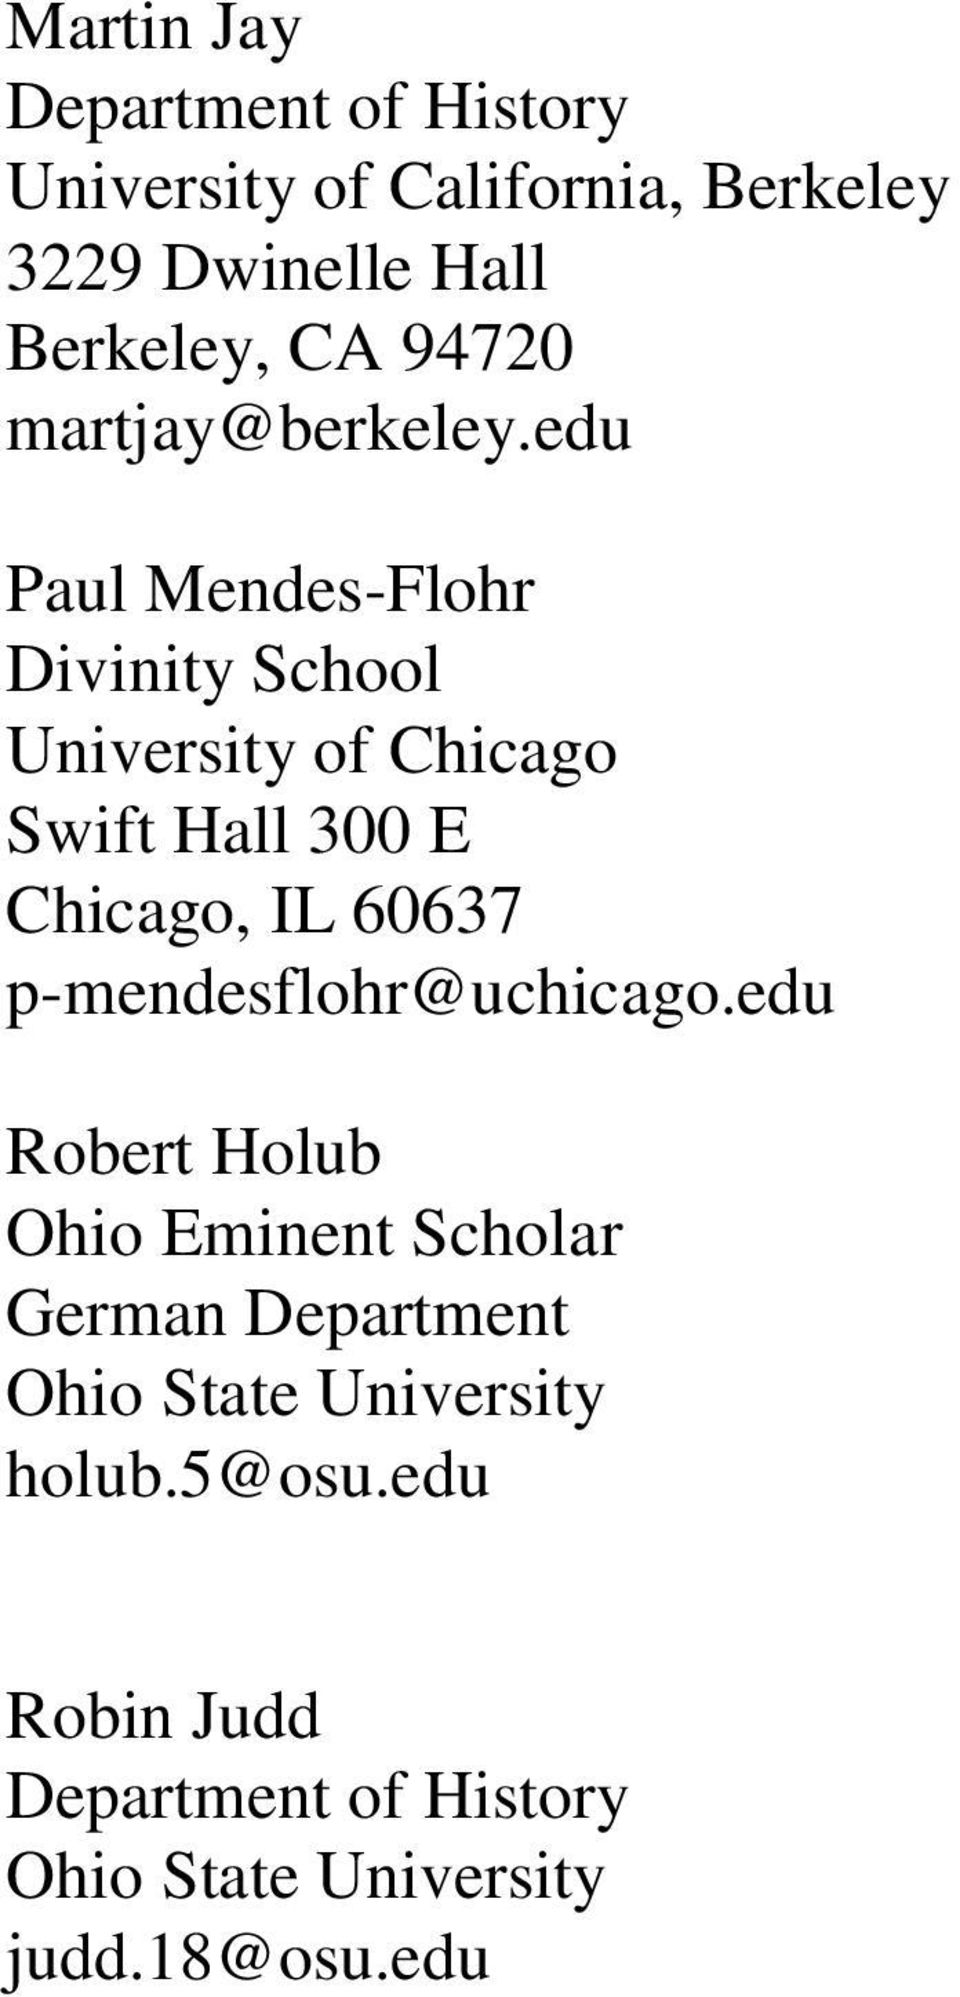 edu Paul Mendes-Flohr Divinity School University of Chicago Swift Hall 300 E Chicago, IL 60637